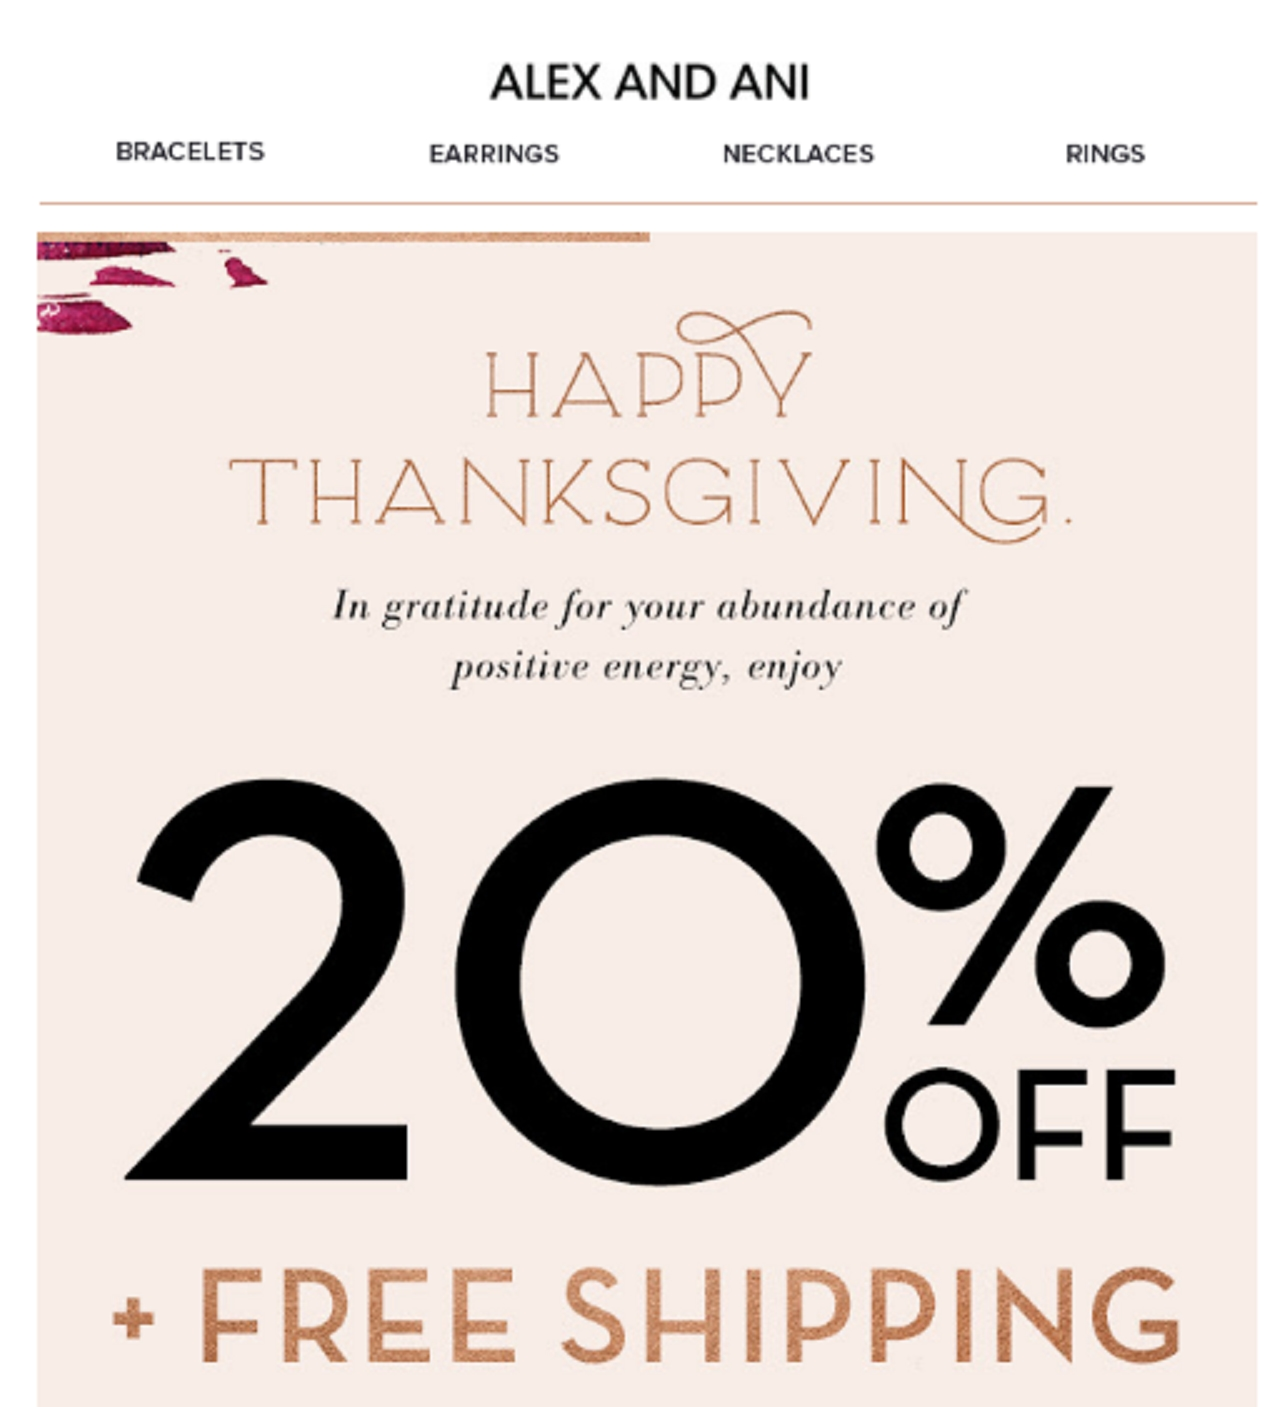 Alex & ani coupon code